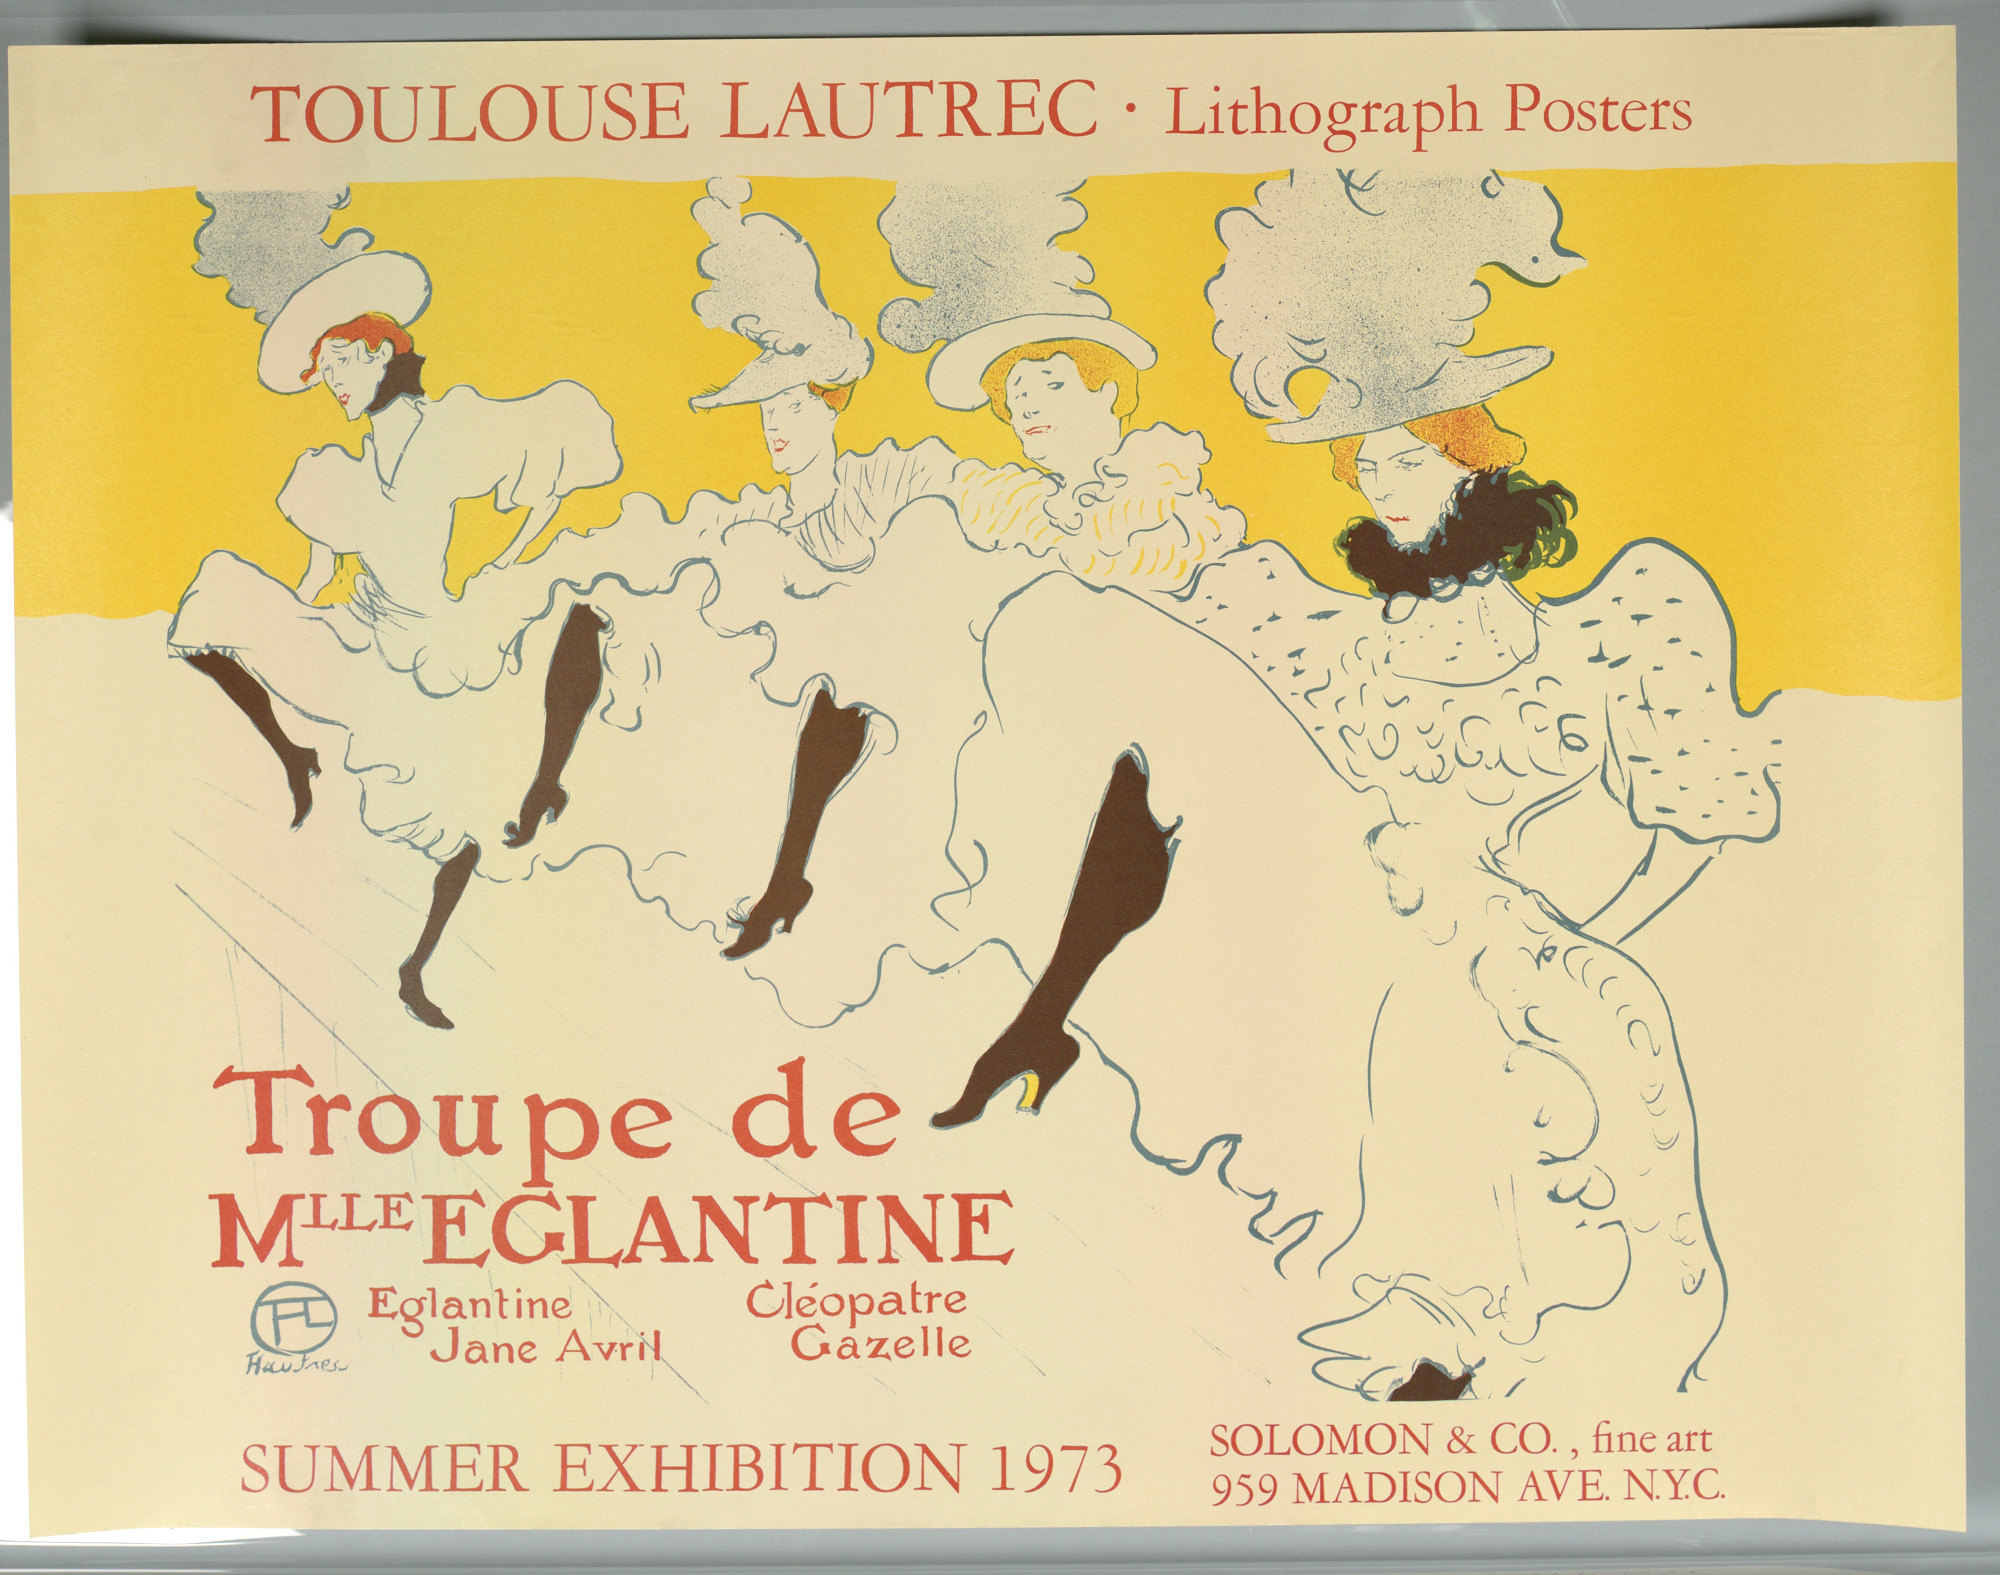 Toulouse-Lautrec lithography Posters